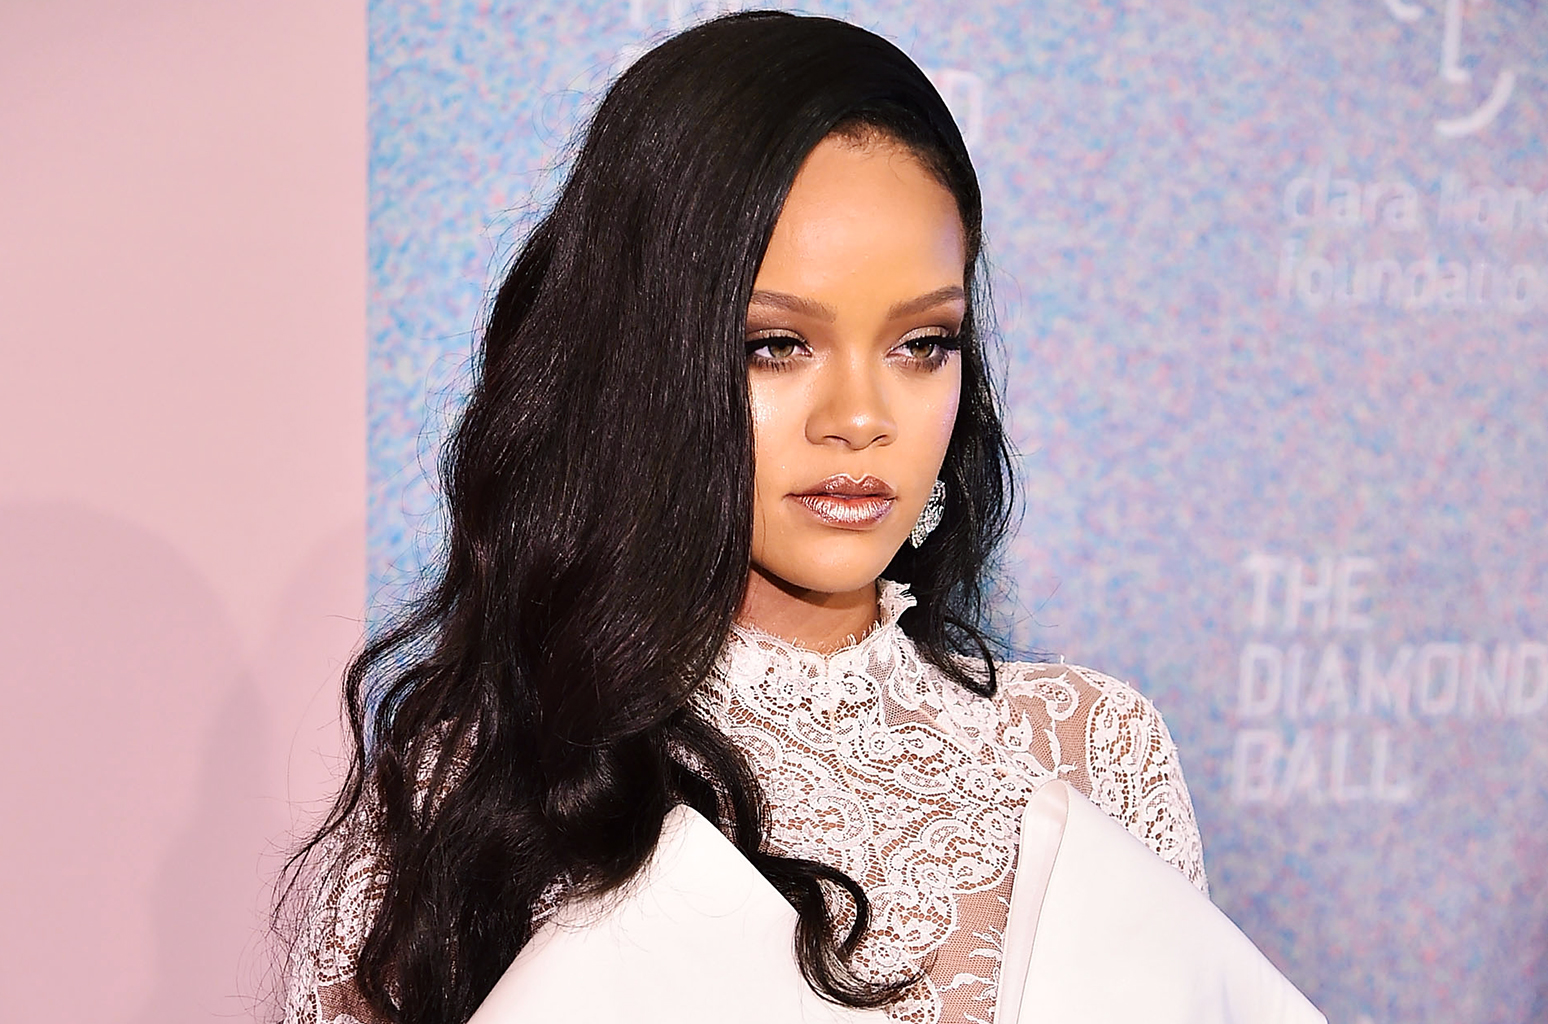 Rihanna's Mini Look-alike Hopes Internet Fame Leads To Job With Singer